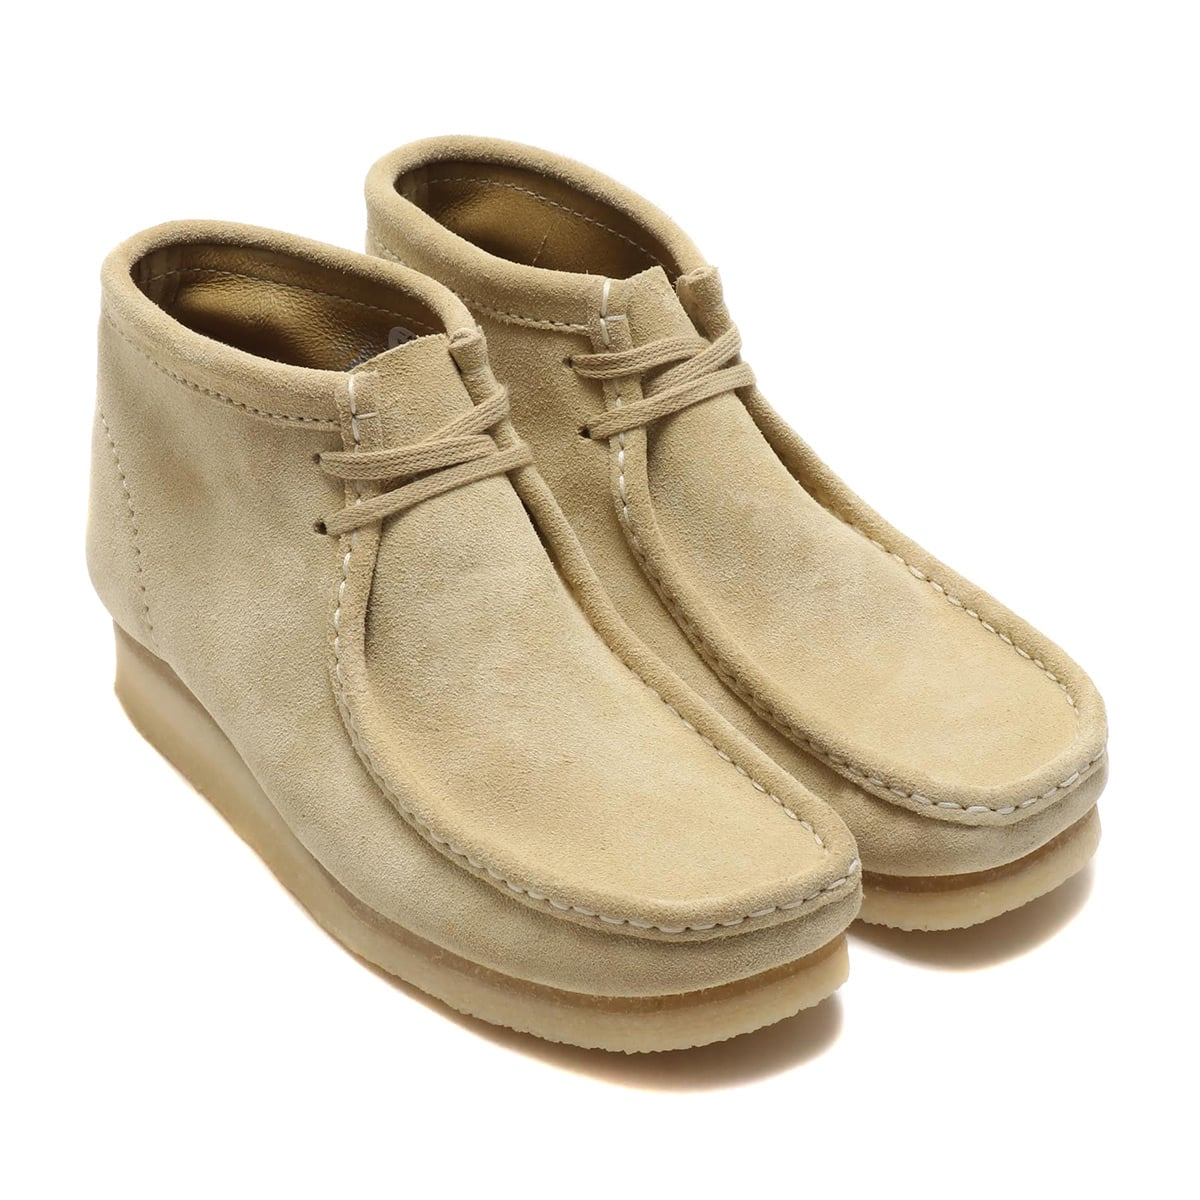 Clarks Wallabee Boot  Maple Suede 18FW-I_photo_large